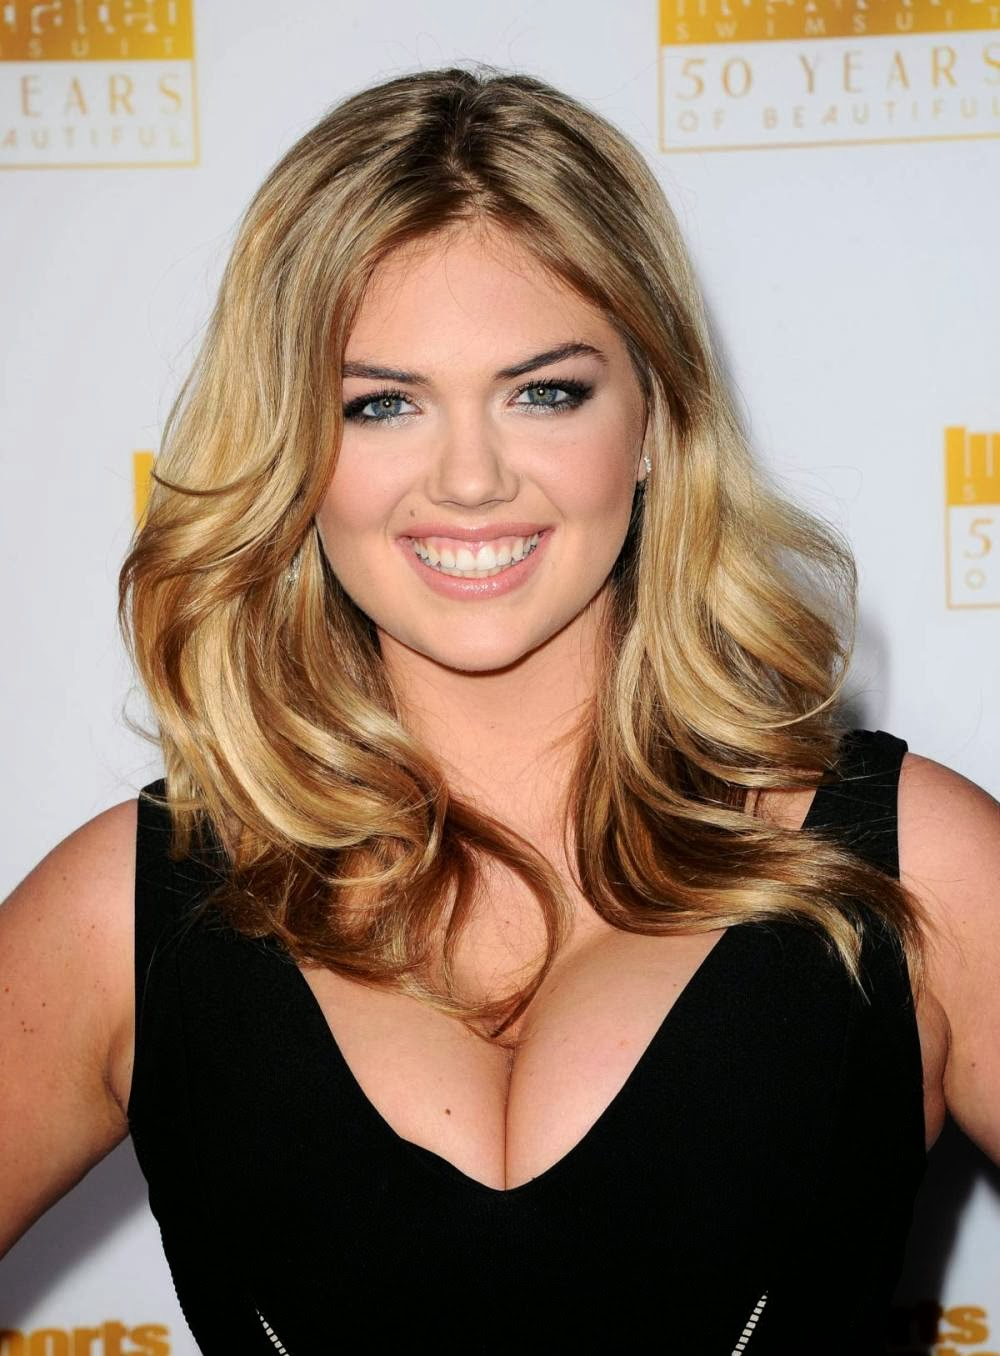 upton big and beautiful singles Kate upton height weight body statistics kate upton has a beautiful face that conform to the back like 40 years ago wished would be considered a big whore.